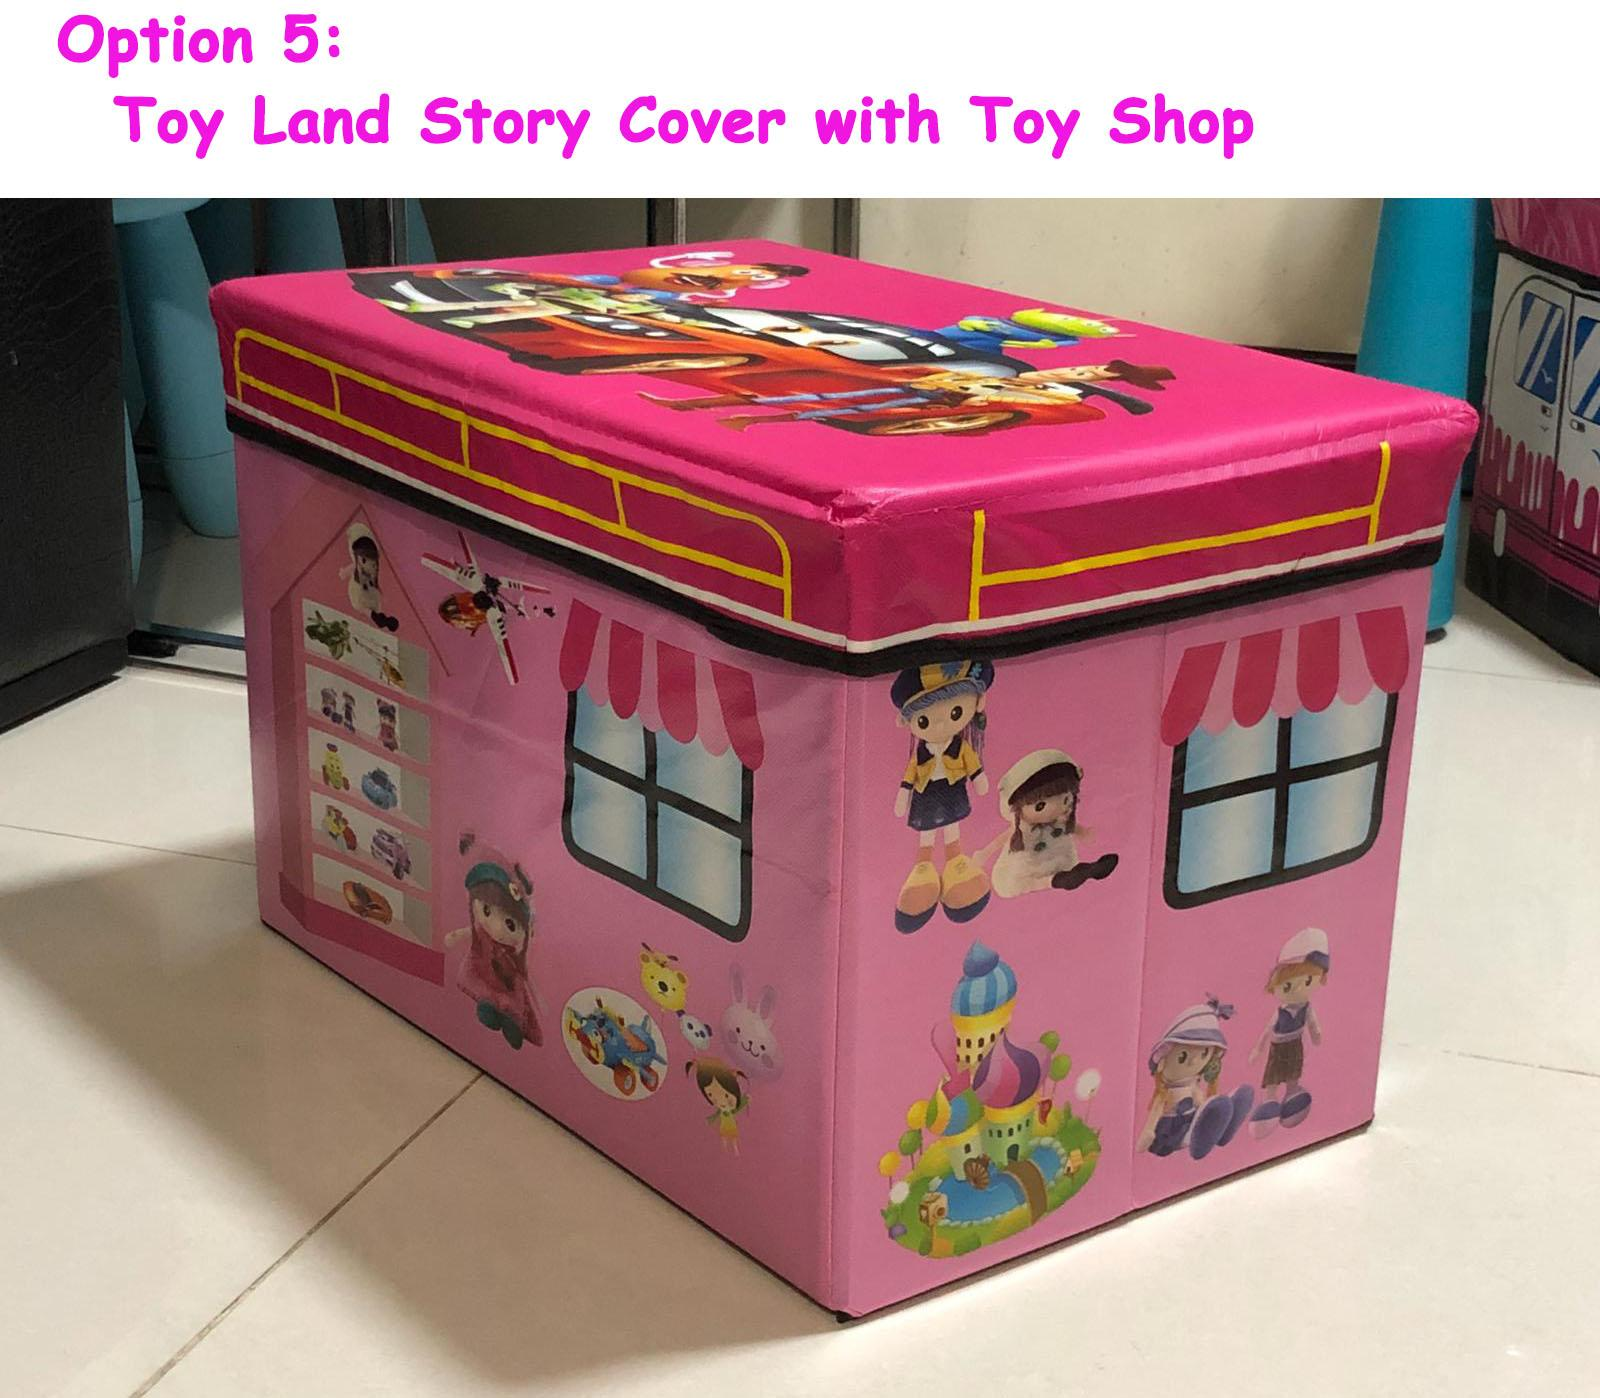 Foldable Large Soft Toy Storage Box for Kids Great sitting stool Storage for Baby Clothes Container Book Bench for Boy and Girl Nursery Trunk - Mix and match - cover (Pink, McQueen race car, Toy Story Land and side view (Toy shop and ice cream Shop)